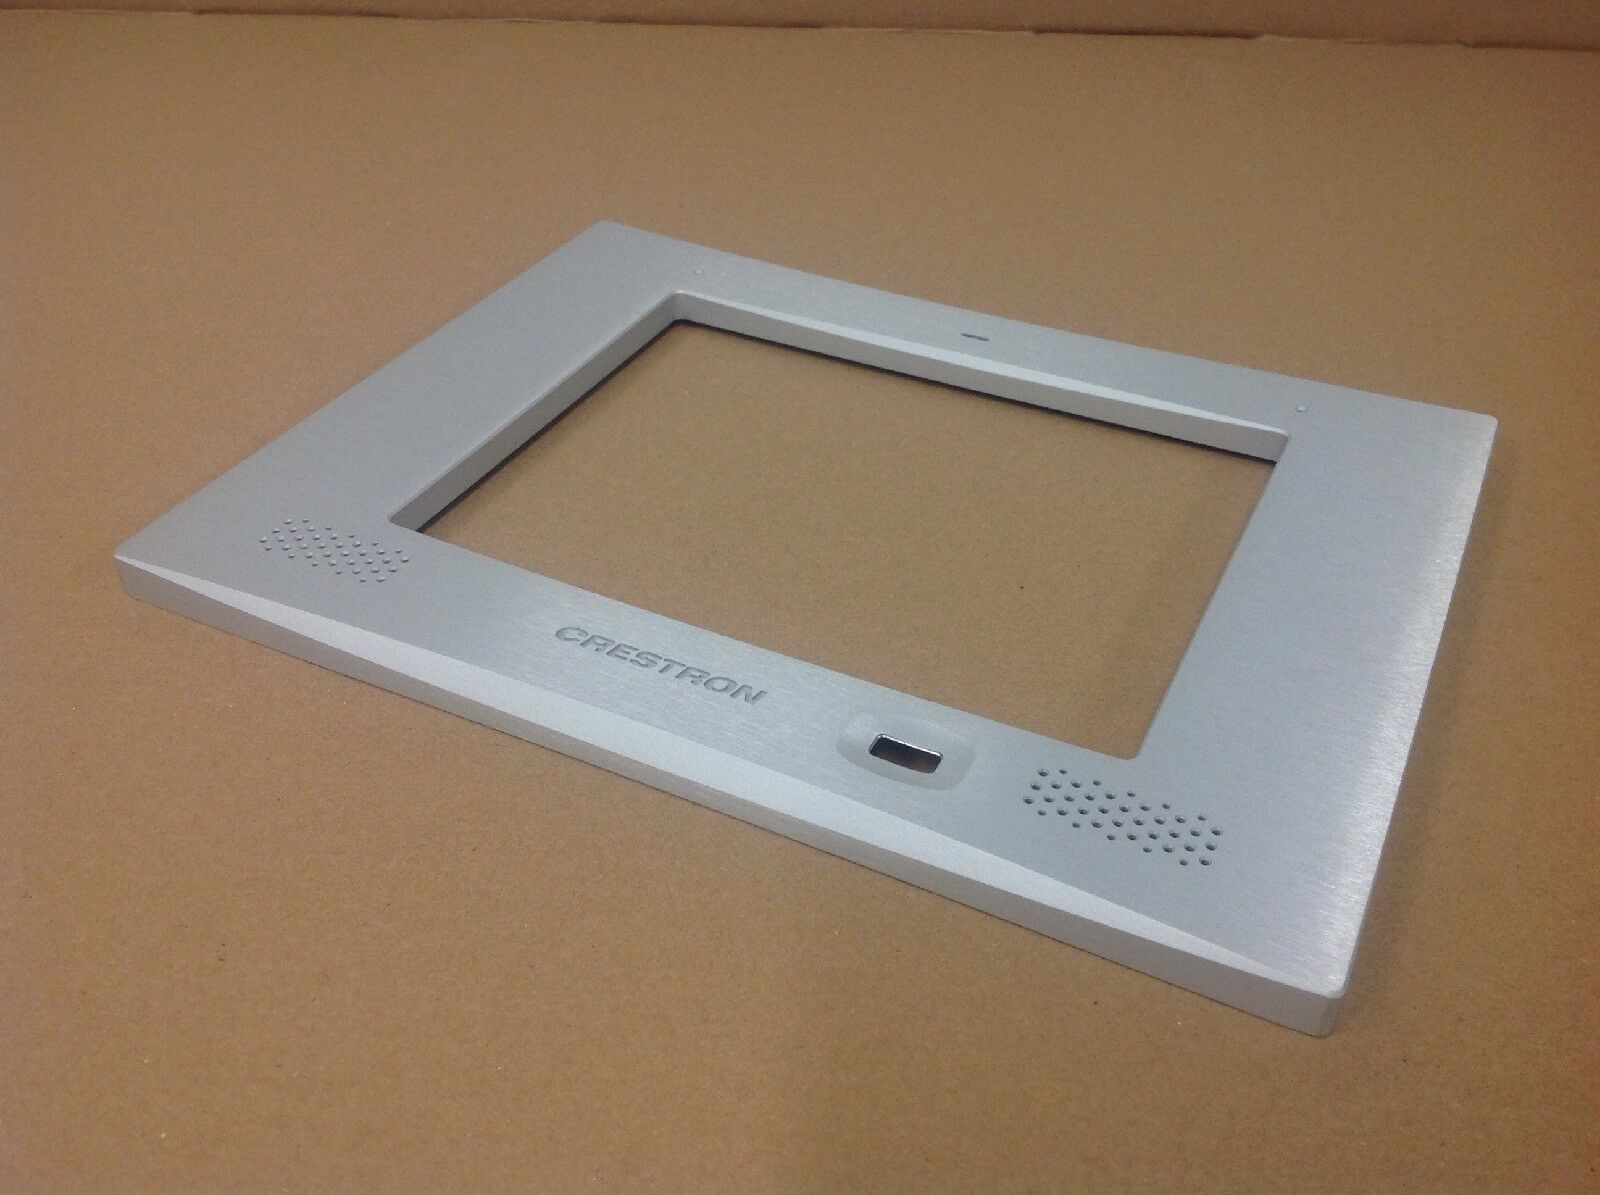 CRESTRON TPMC-FPAR8L-S STEEL aluminum TOUCHPANEL FACEPLATE for TPMC-8L